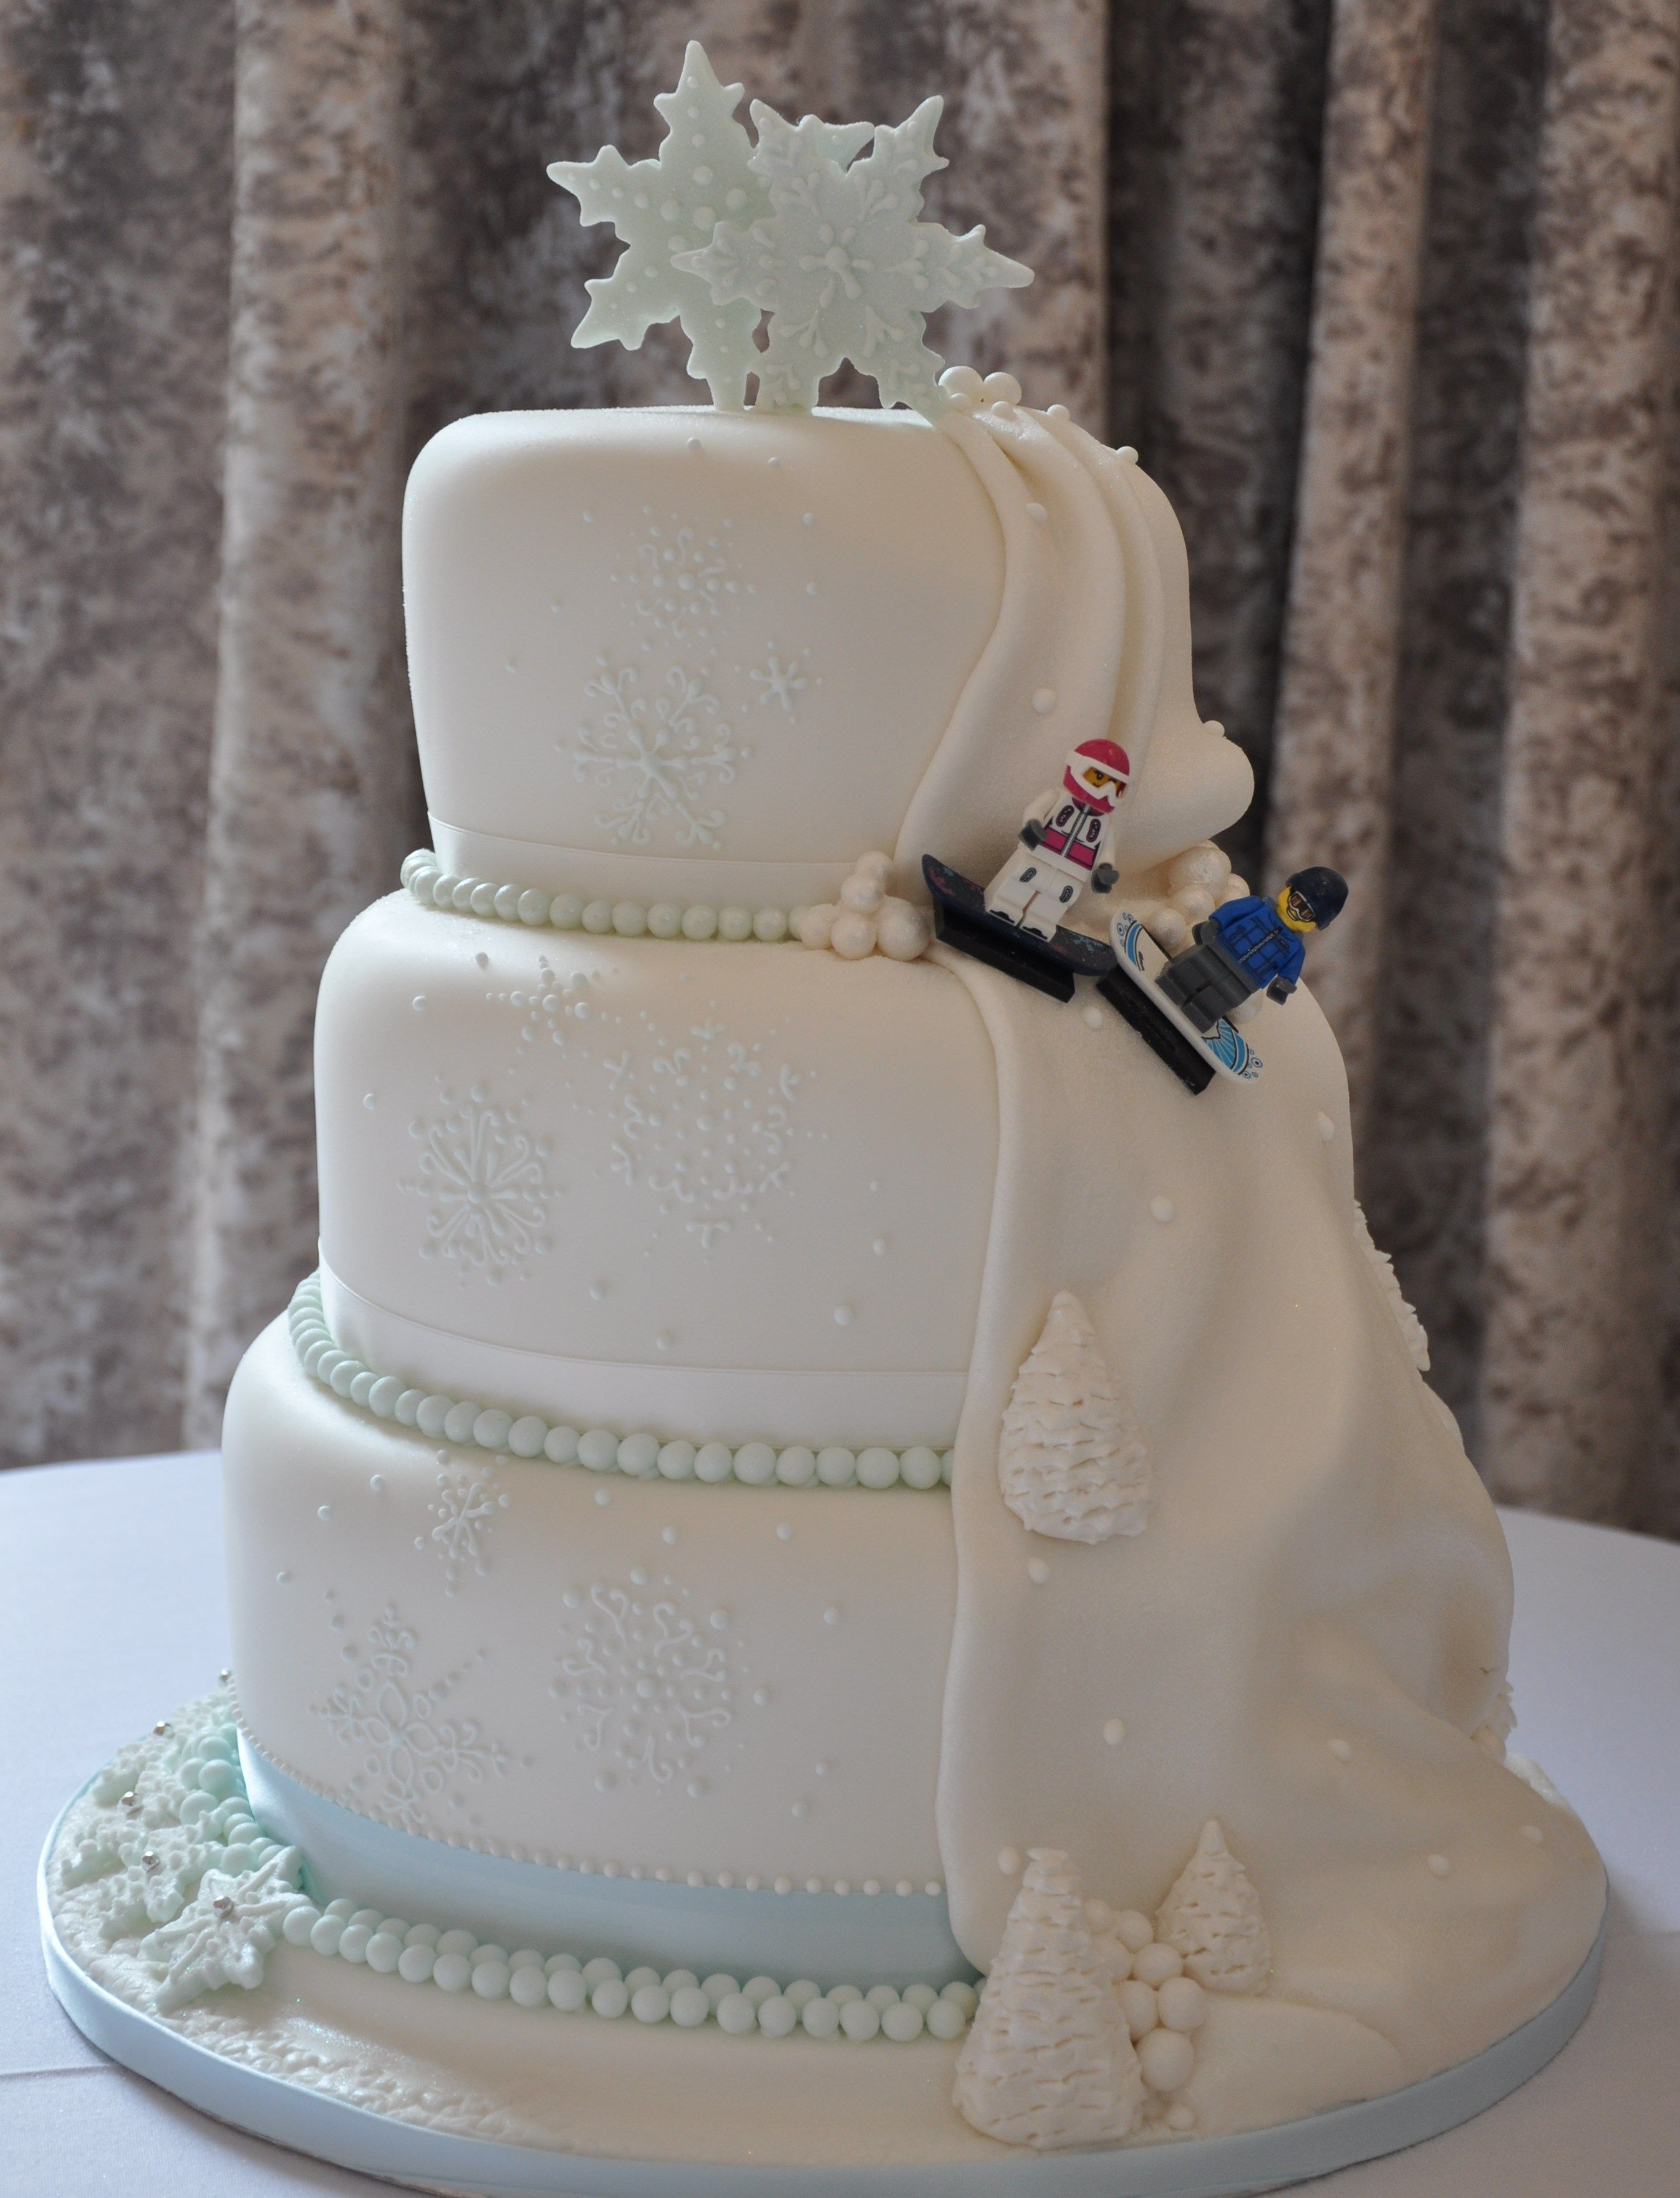 Winter Themed Wedding Cake With Piped Snowflakes And Snowflakes